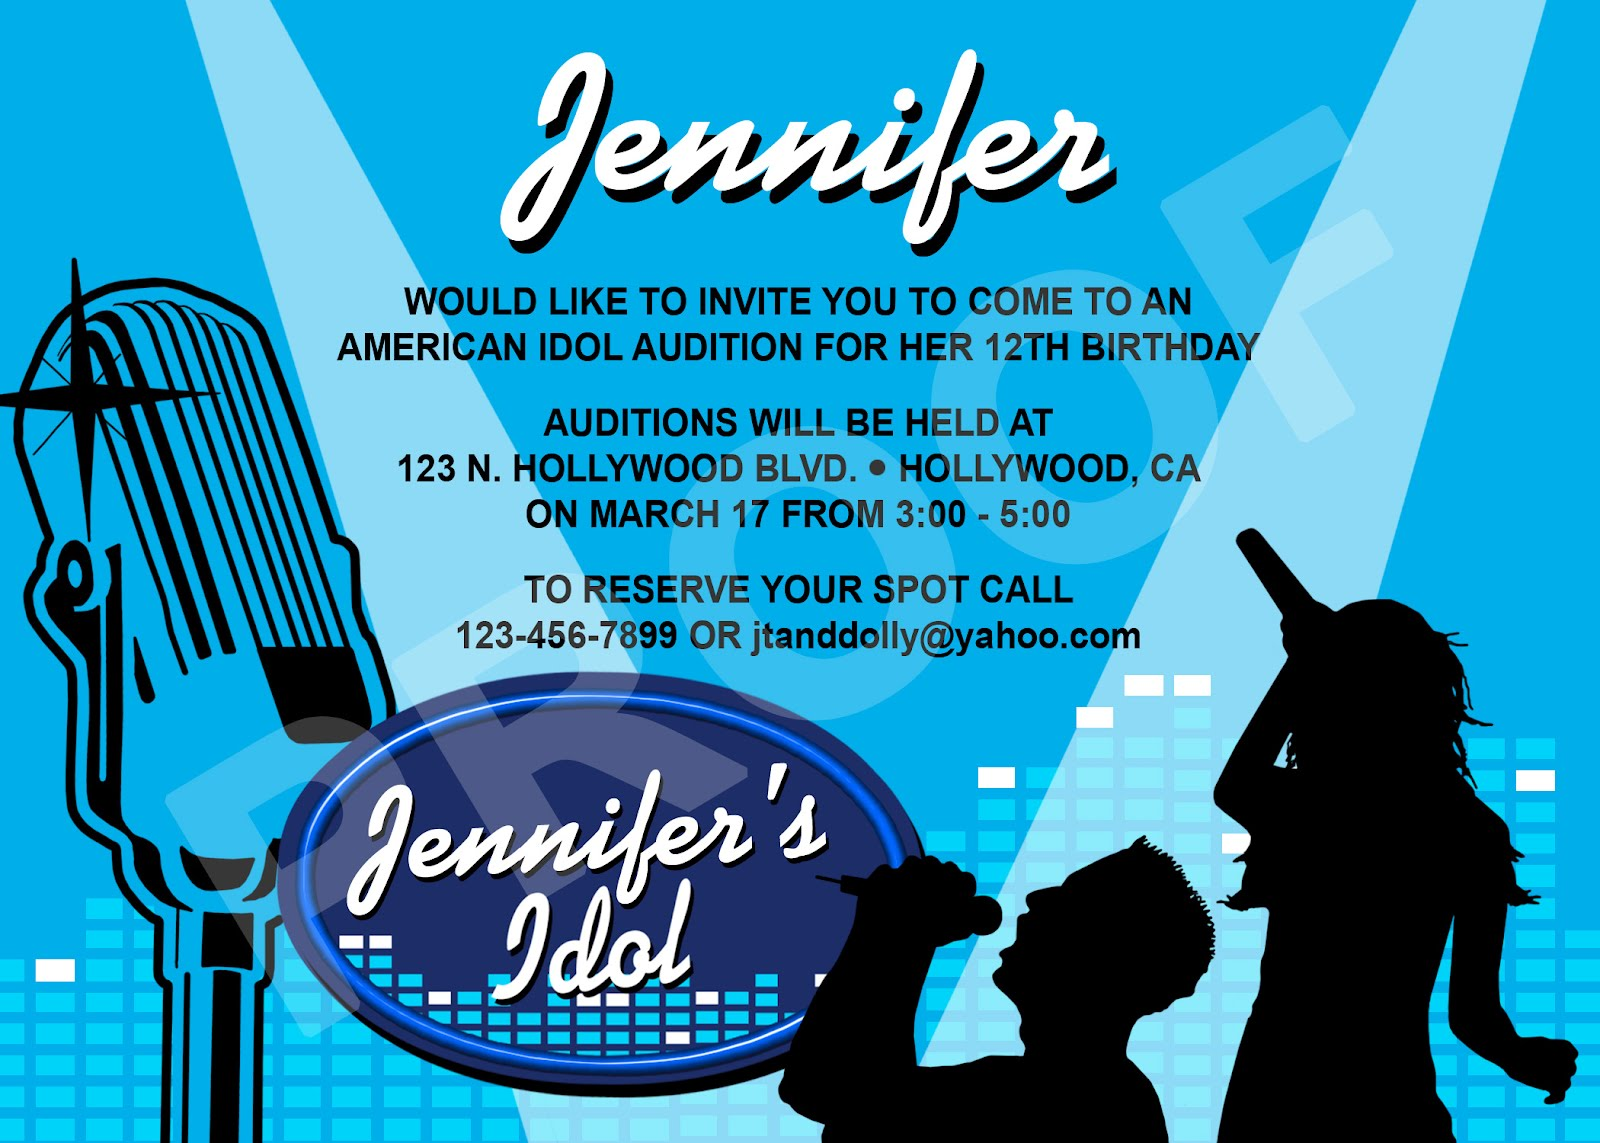 Paper Perfection: American Idol Invitation